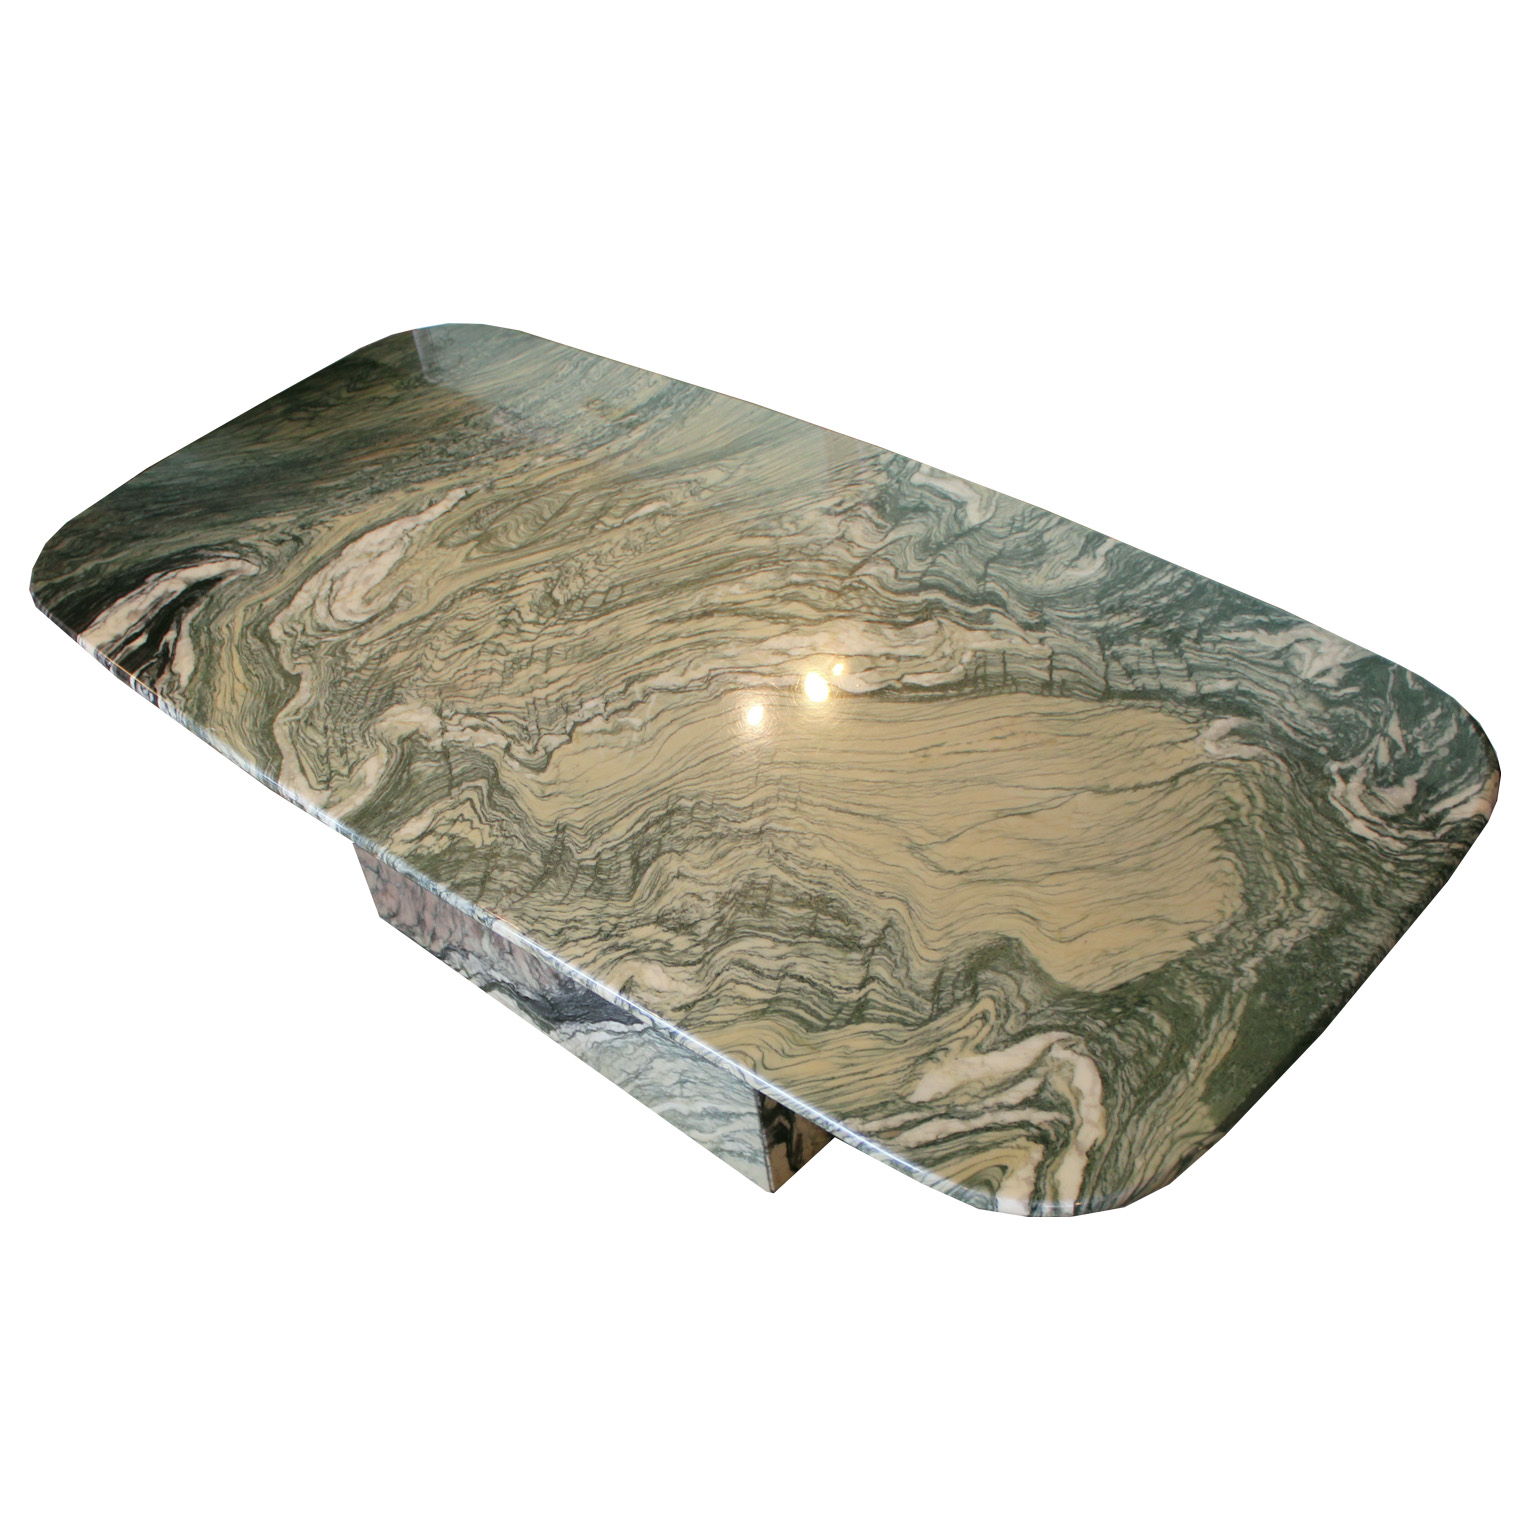 Striking Green and White Marble Coffee Table